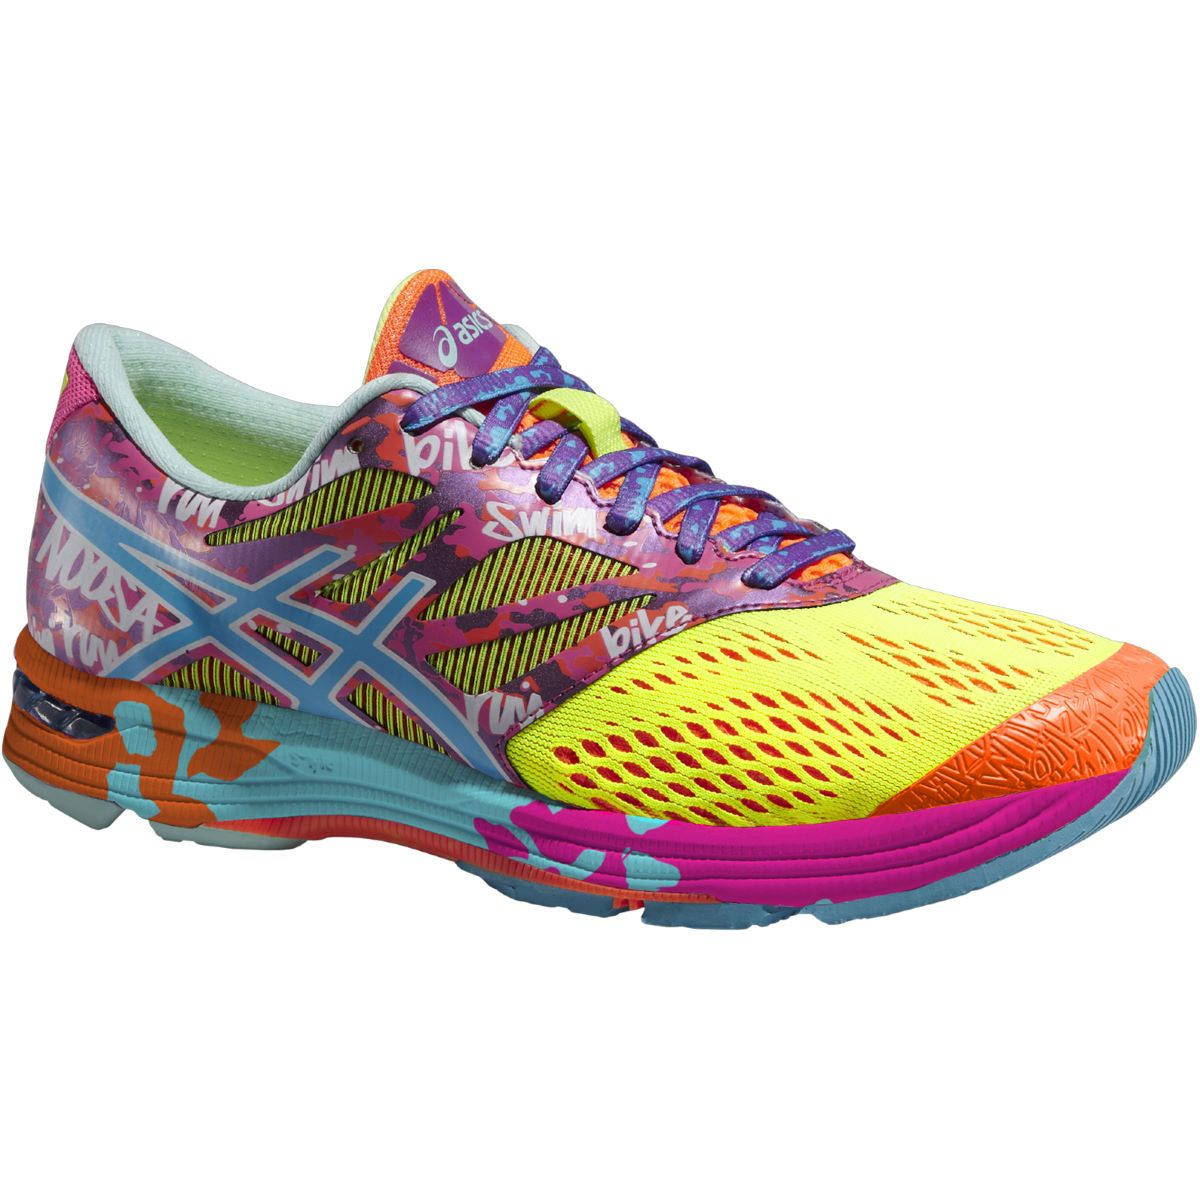 quality design 772c3 0d88c ... Asics Womens Gel-Noosa Tri 10 Shoes - SS15 Racing Running Shoes . ...